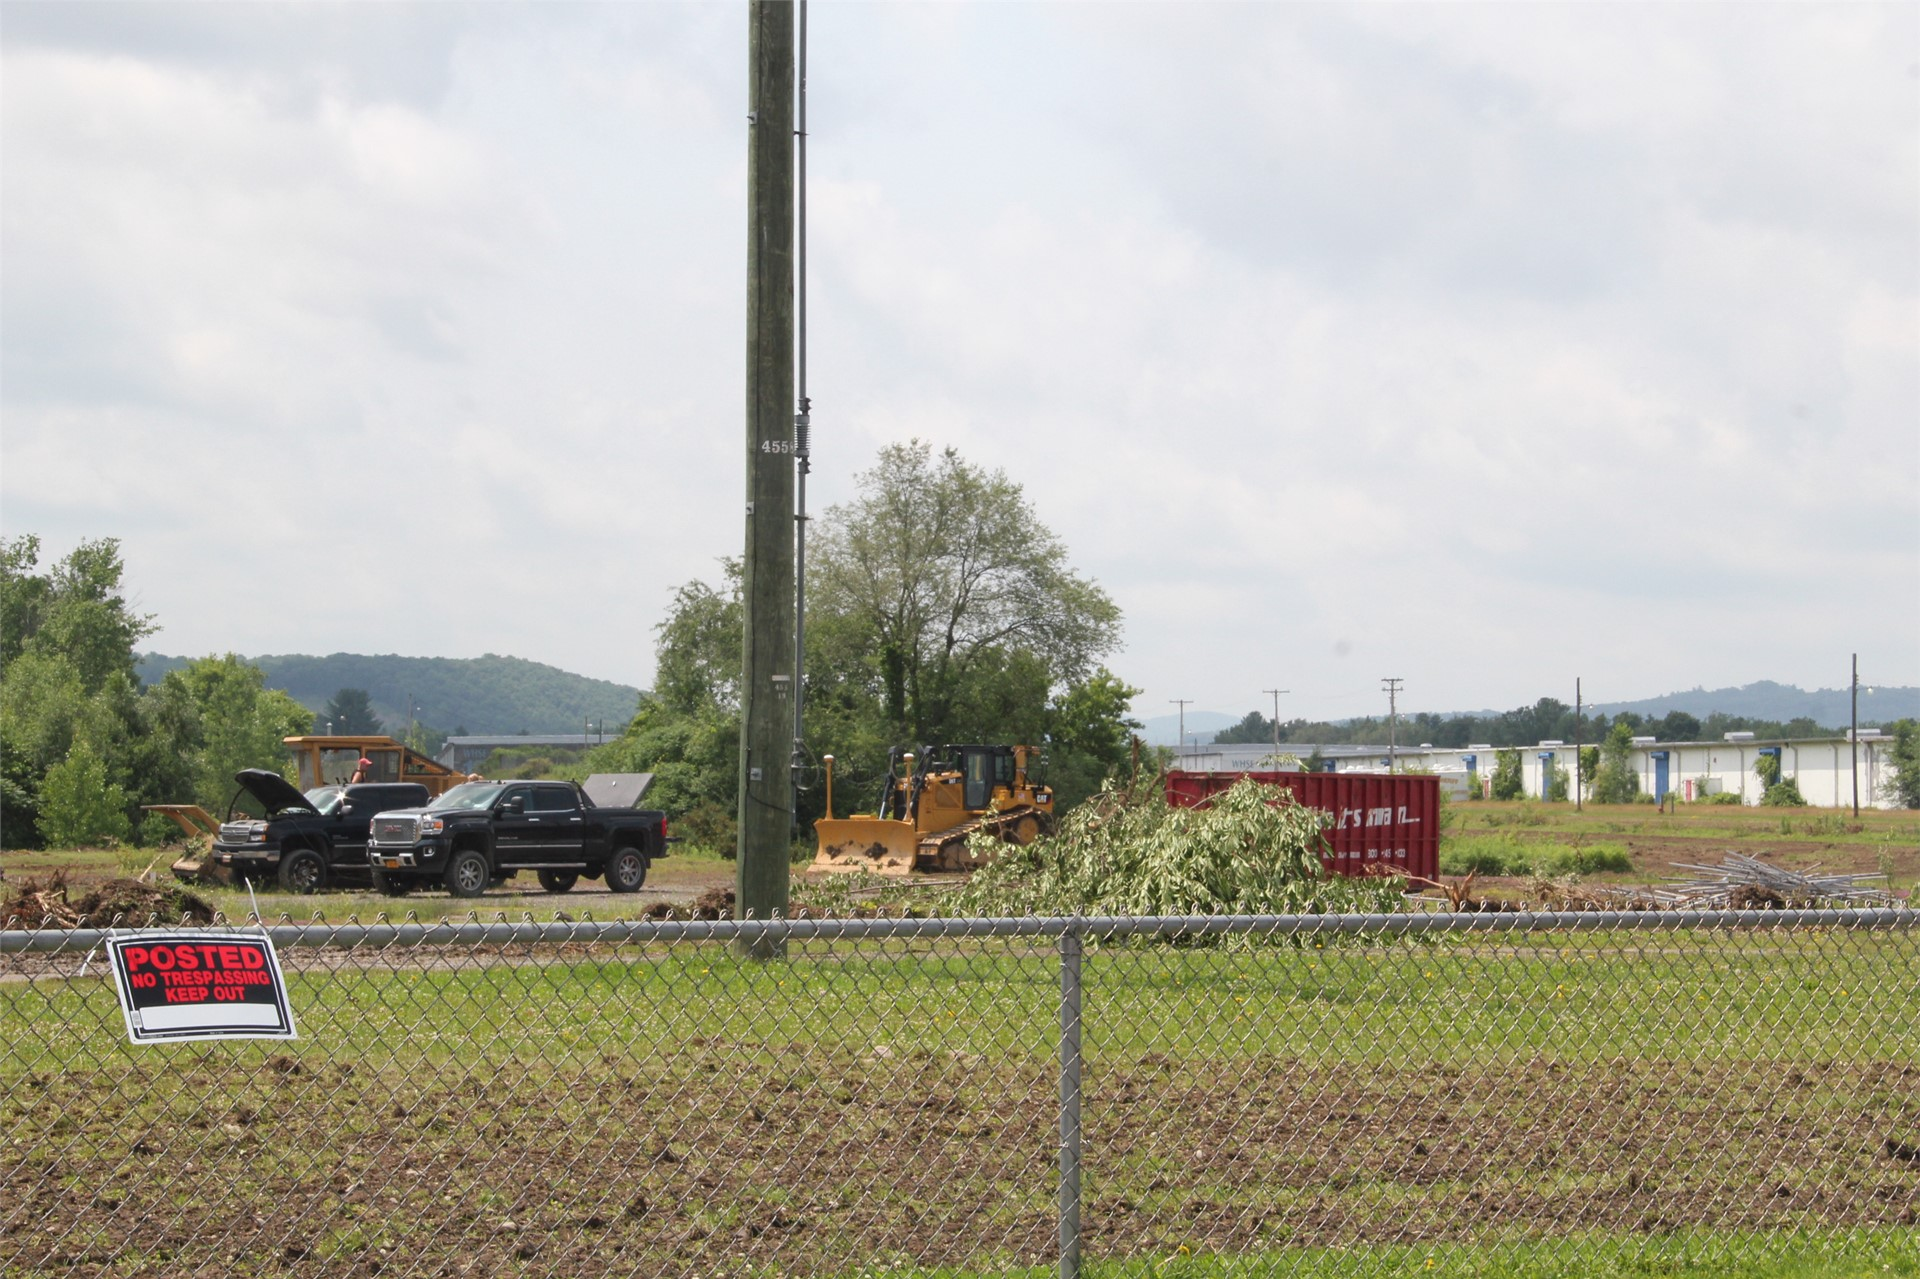 far shot of trucks and equipment at construction scene outdoors